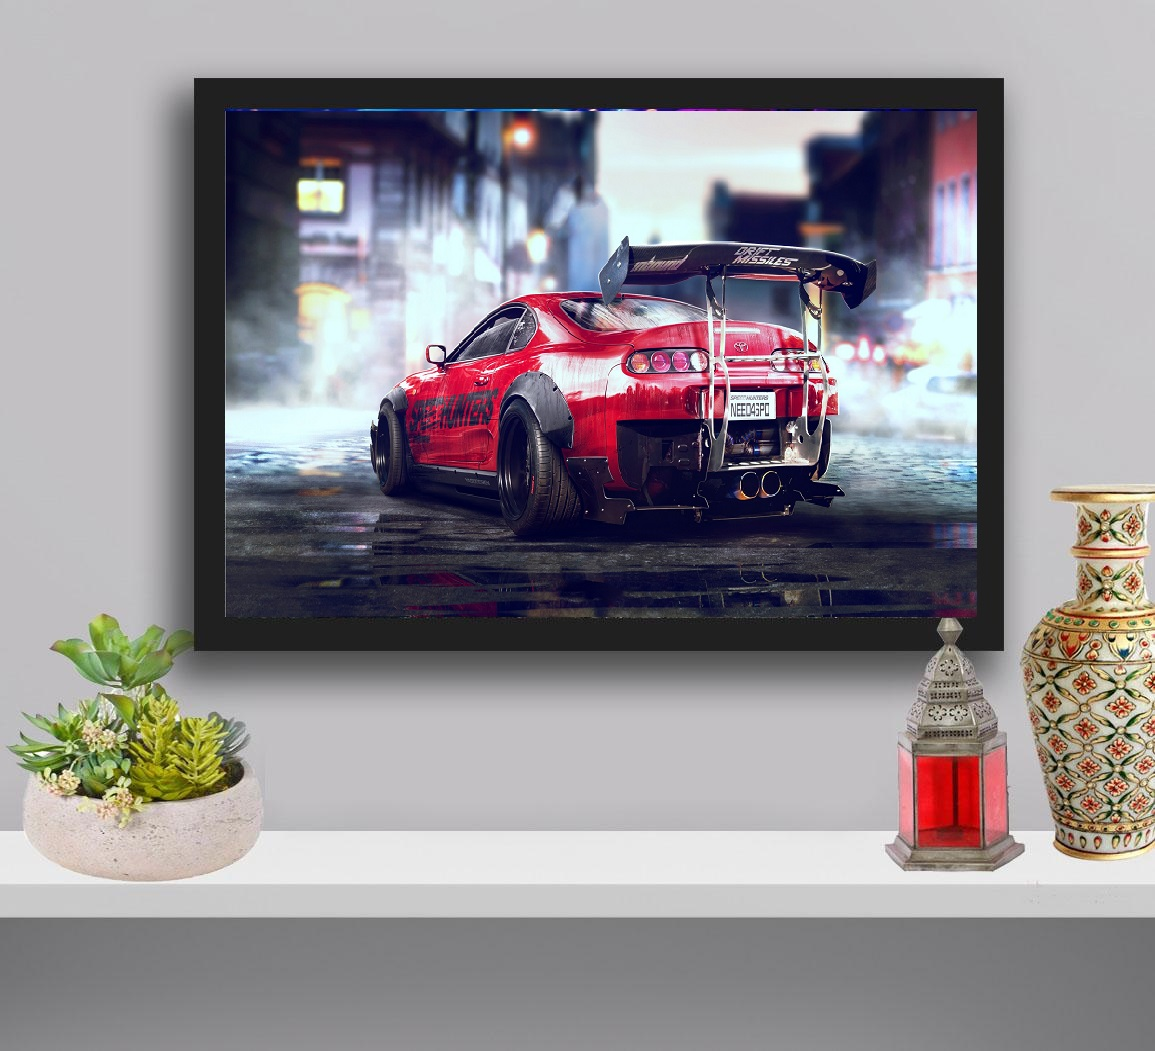 Need For Speed Gaming Poster Wall Hanging Glass Photo Frame in Premium Glossy Photo Paper A4/ A3 size for Home Decor and Decoration Accessories